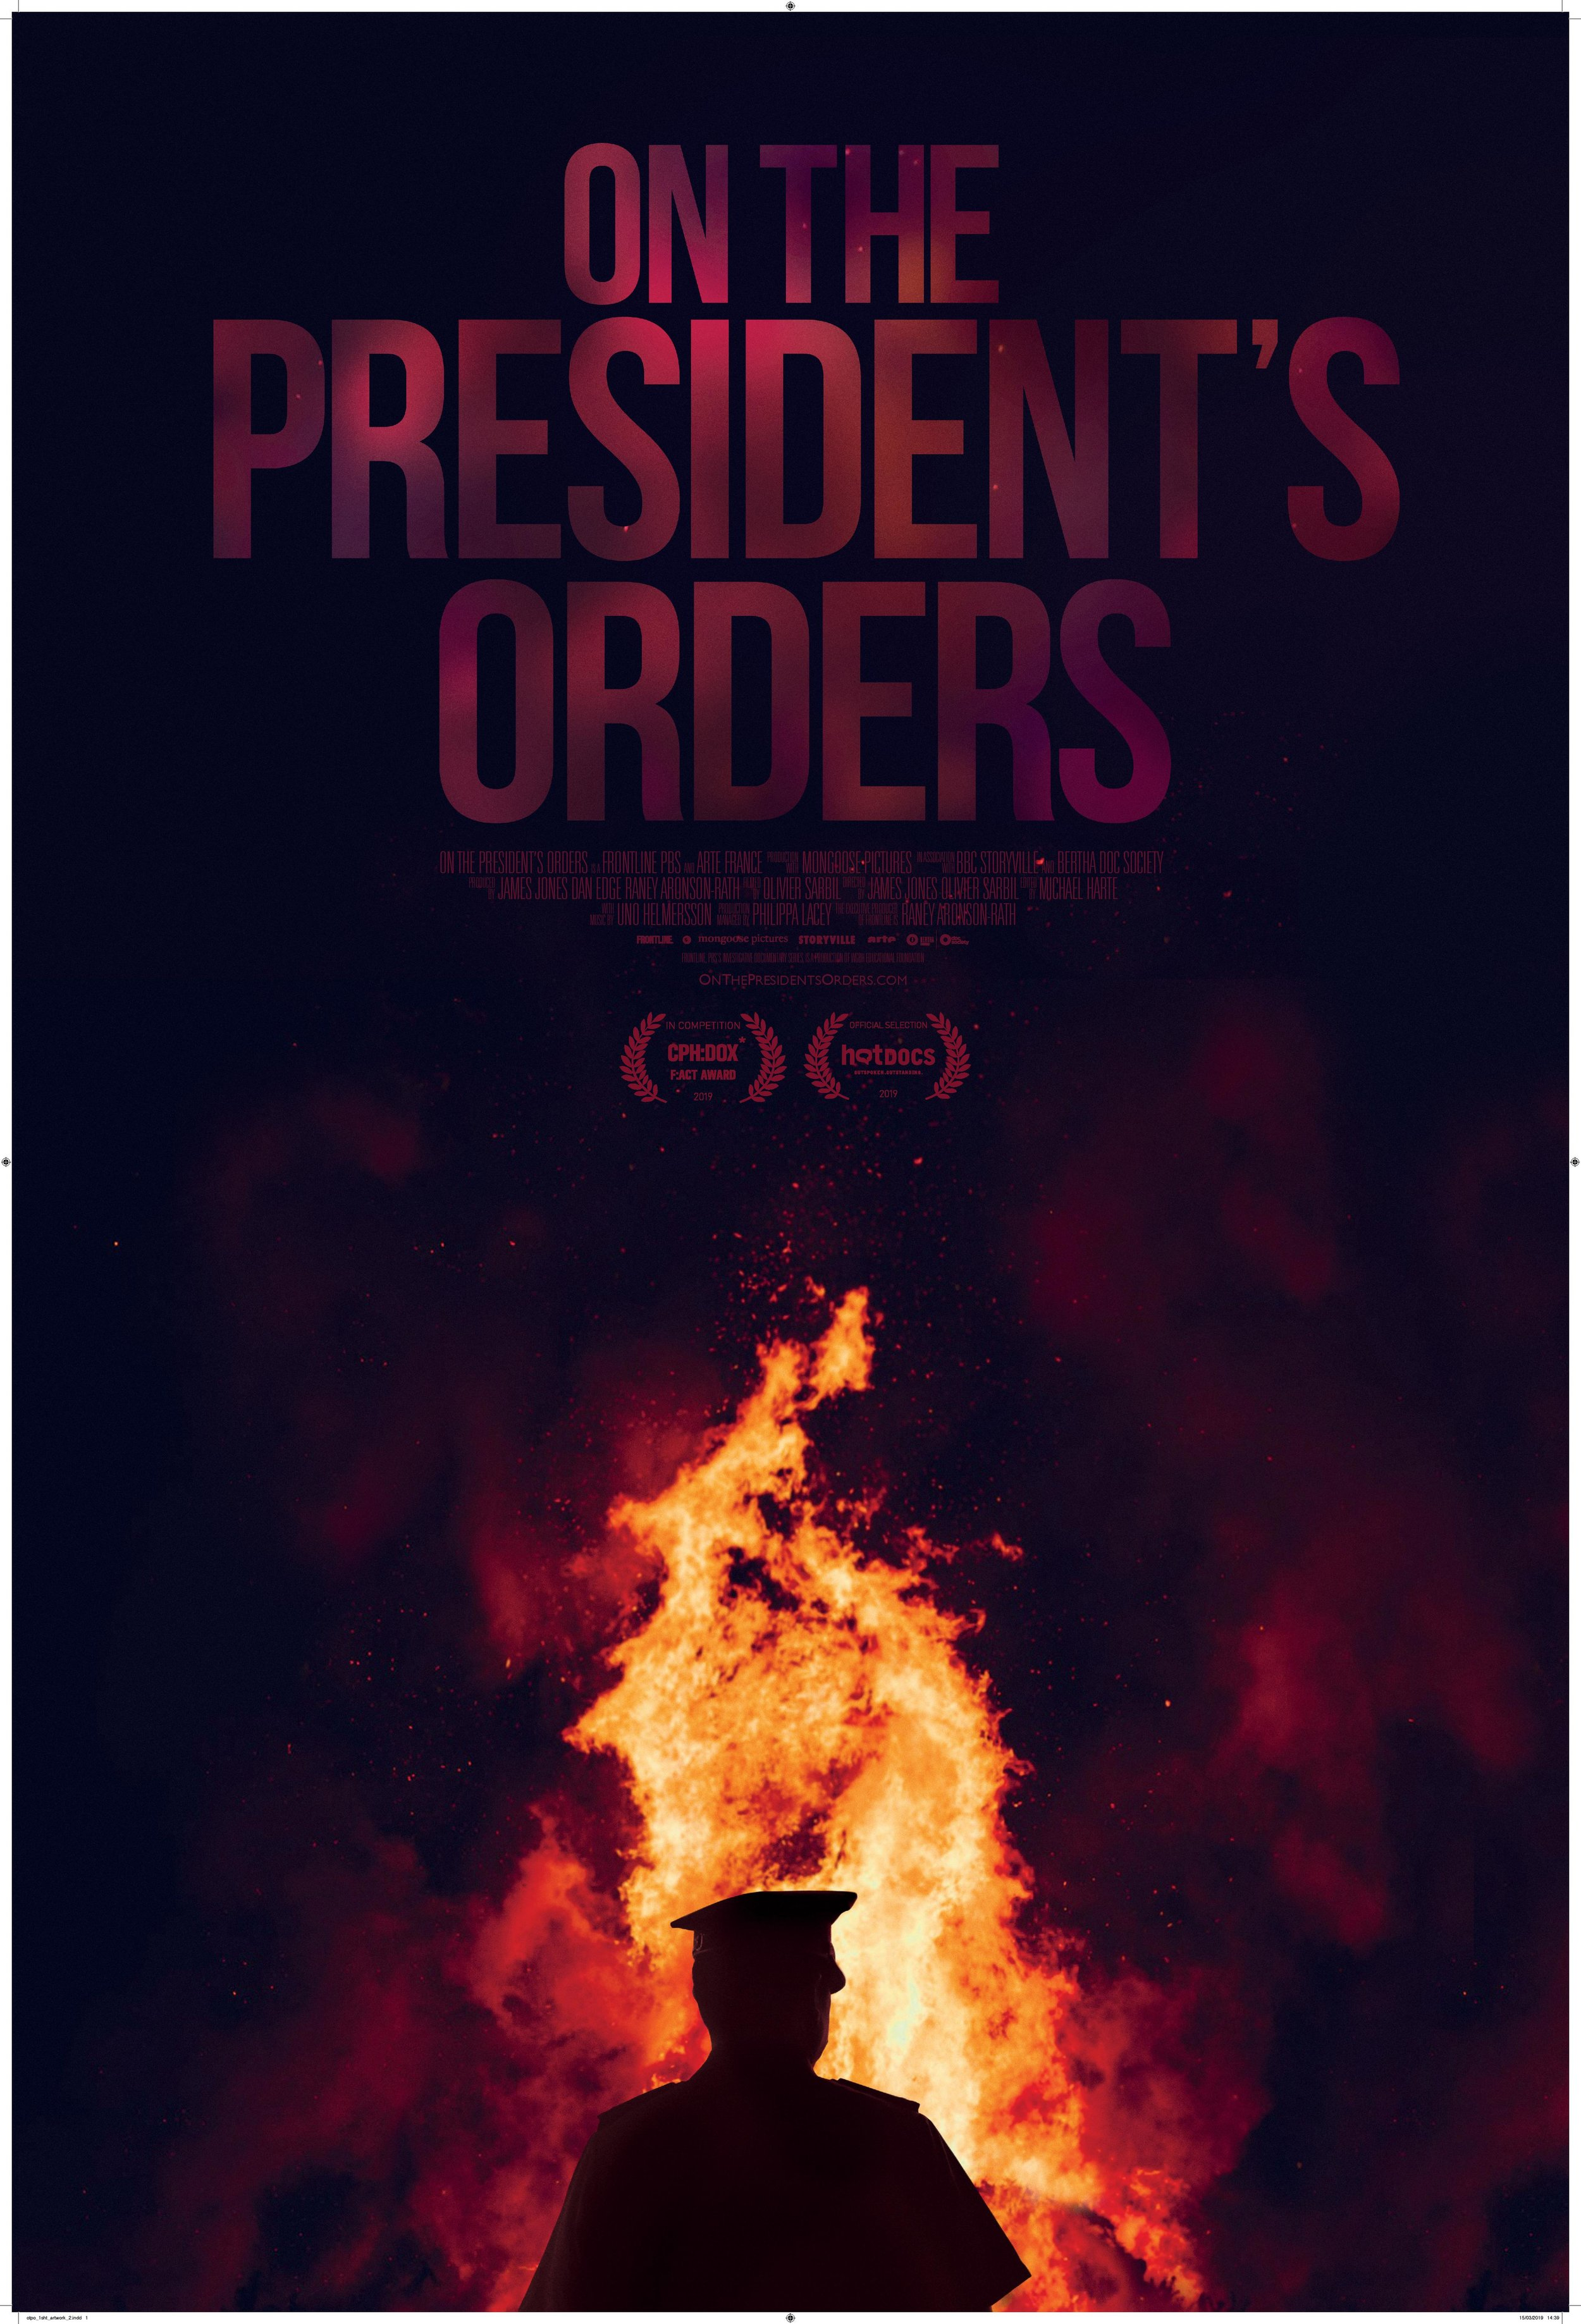 On The President's Orders poster